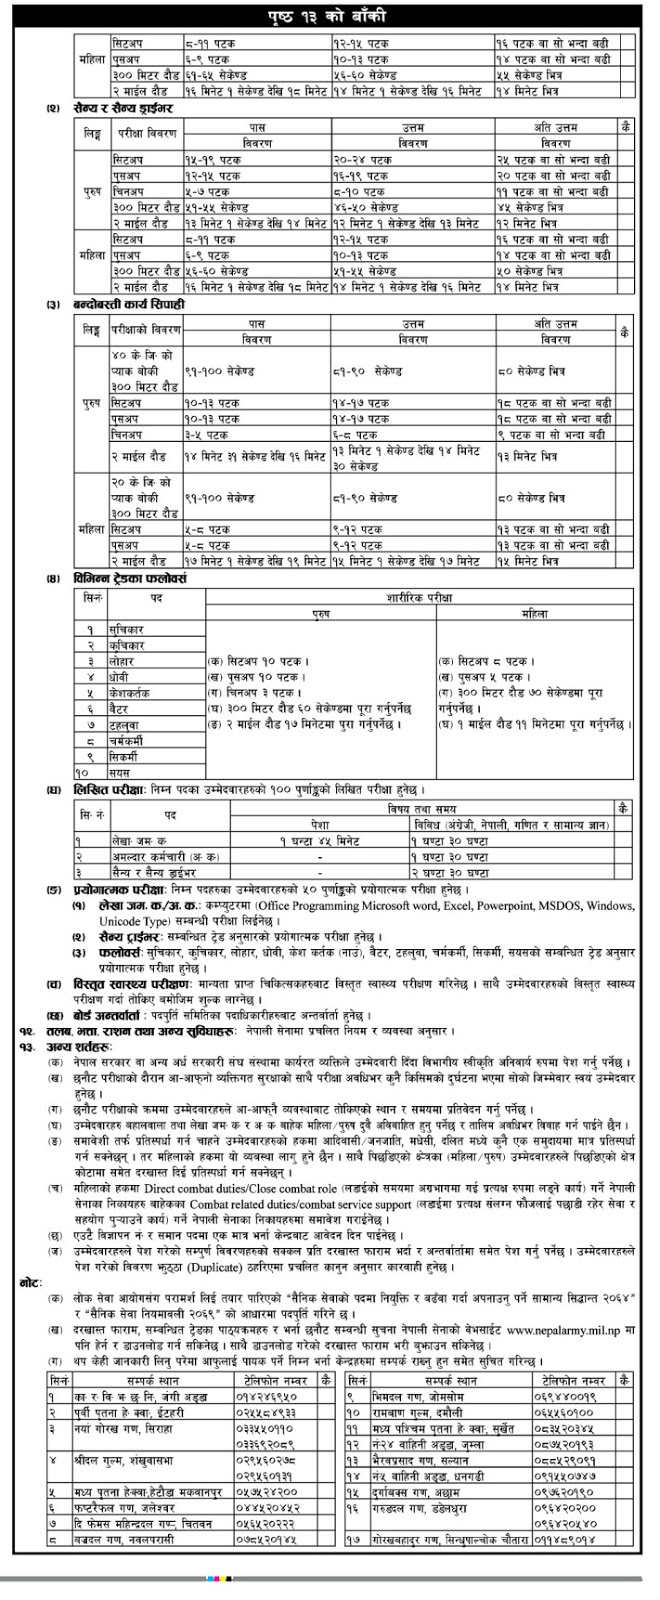 Nepal Army Recruitment 2016-17